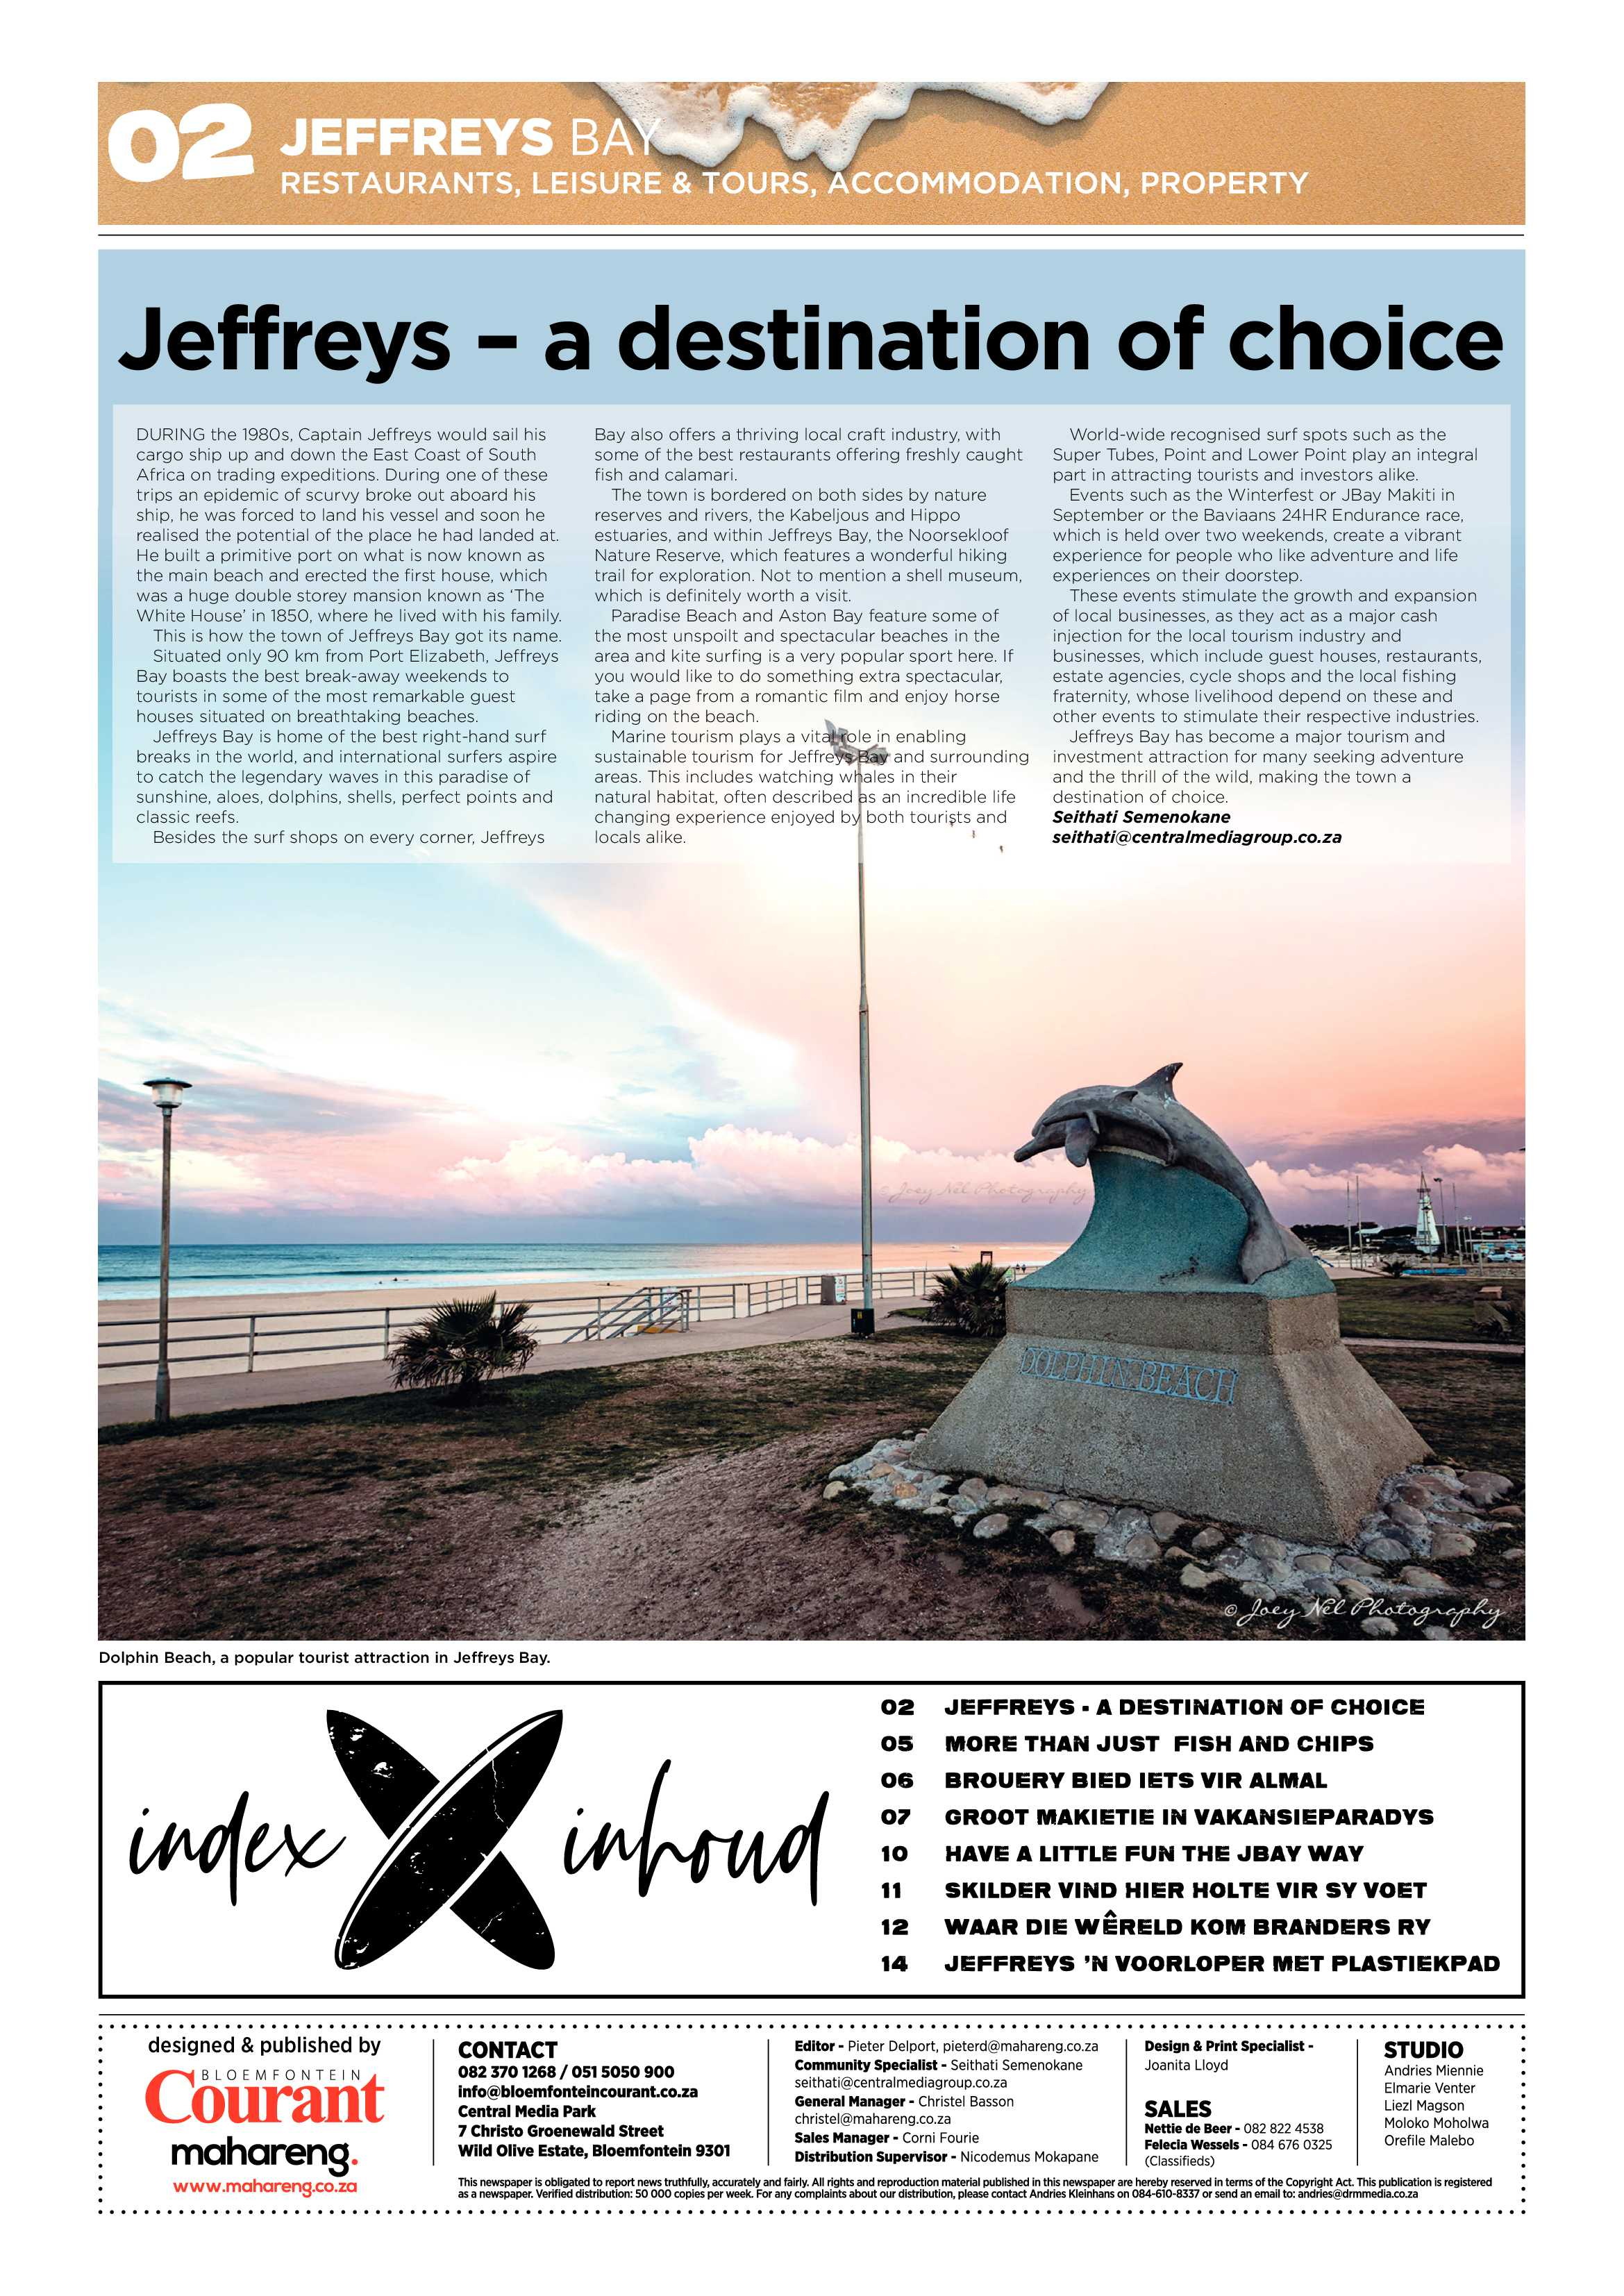 jeffreys-bay-courant-feature-28-march-2019-epapers-page-2